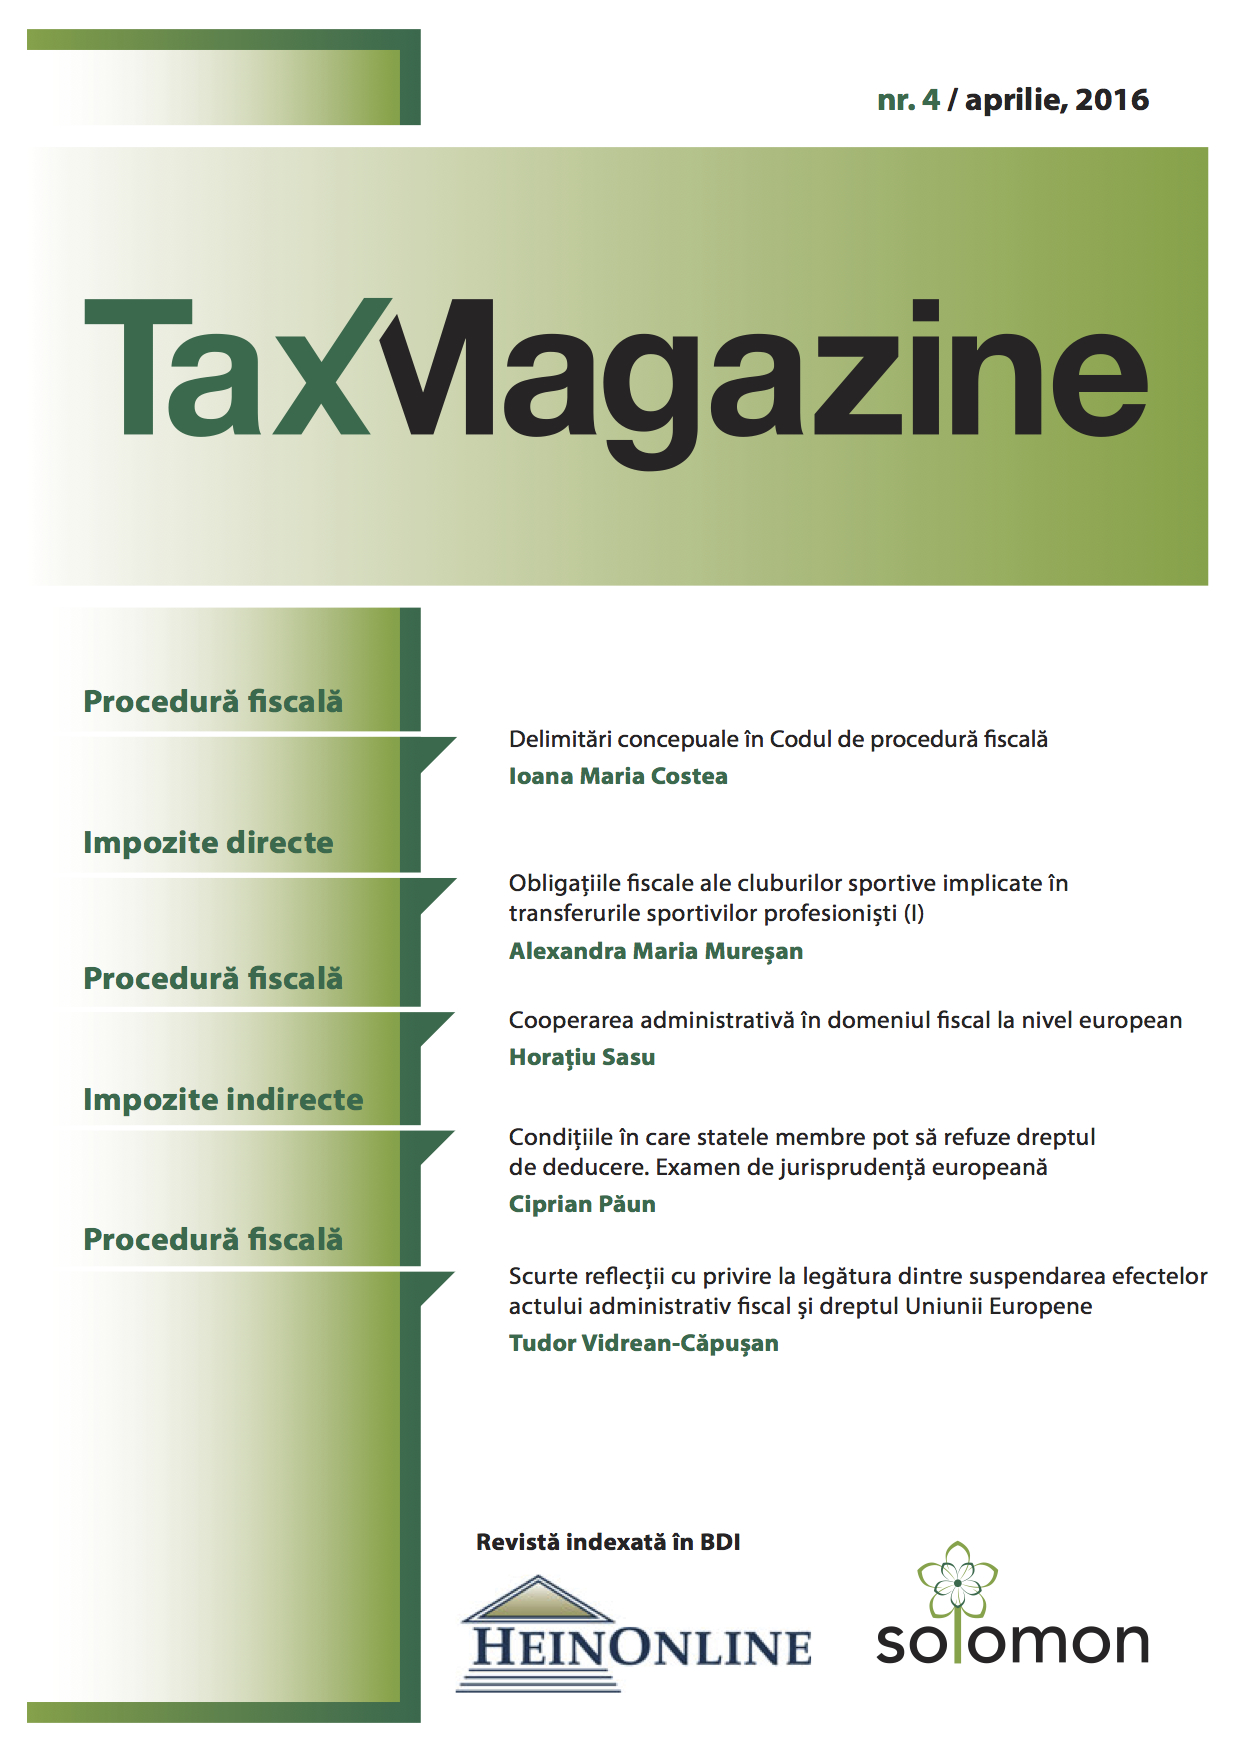 taxMAG_COVER_4